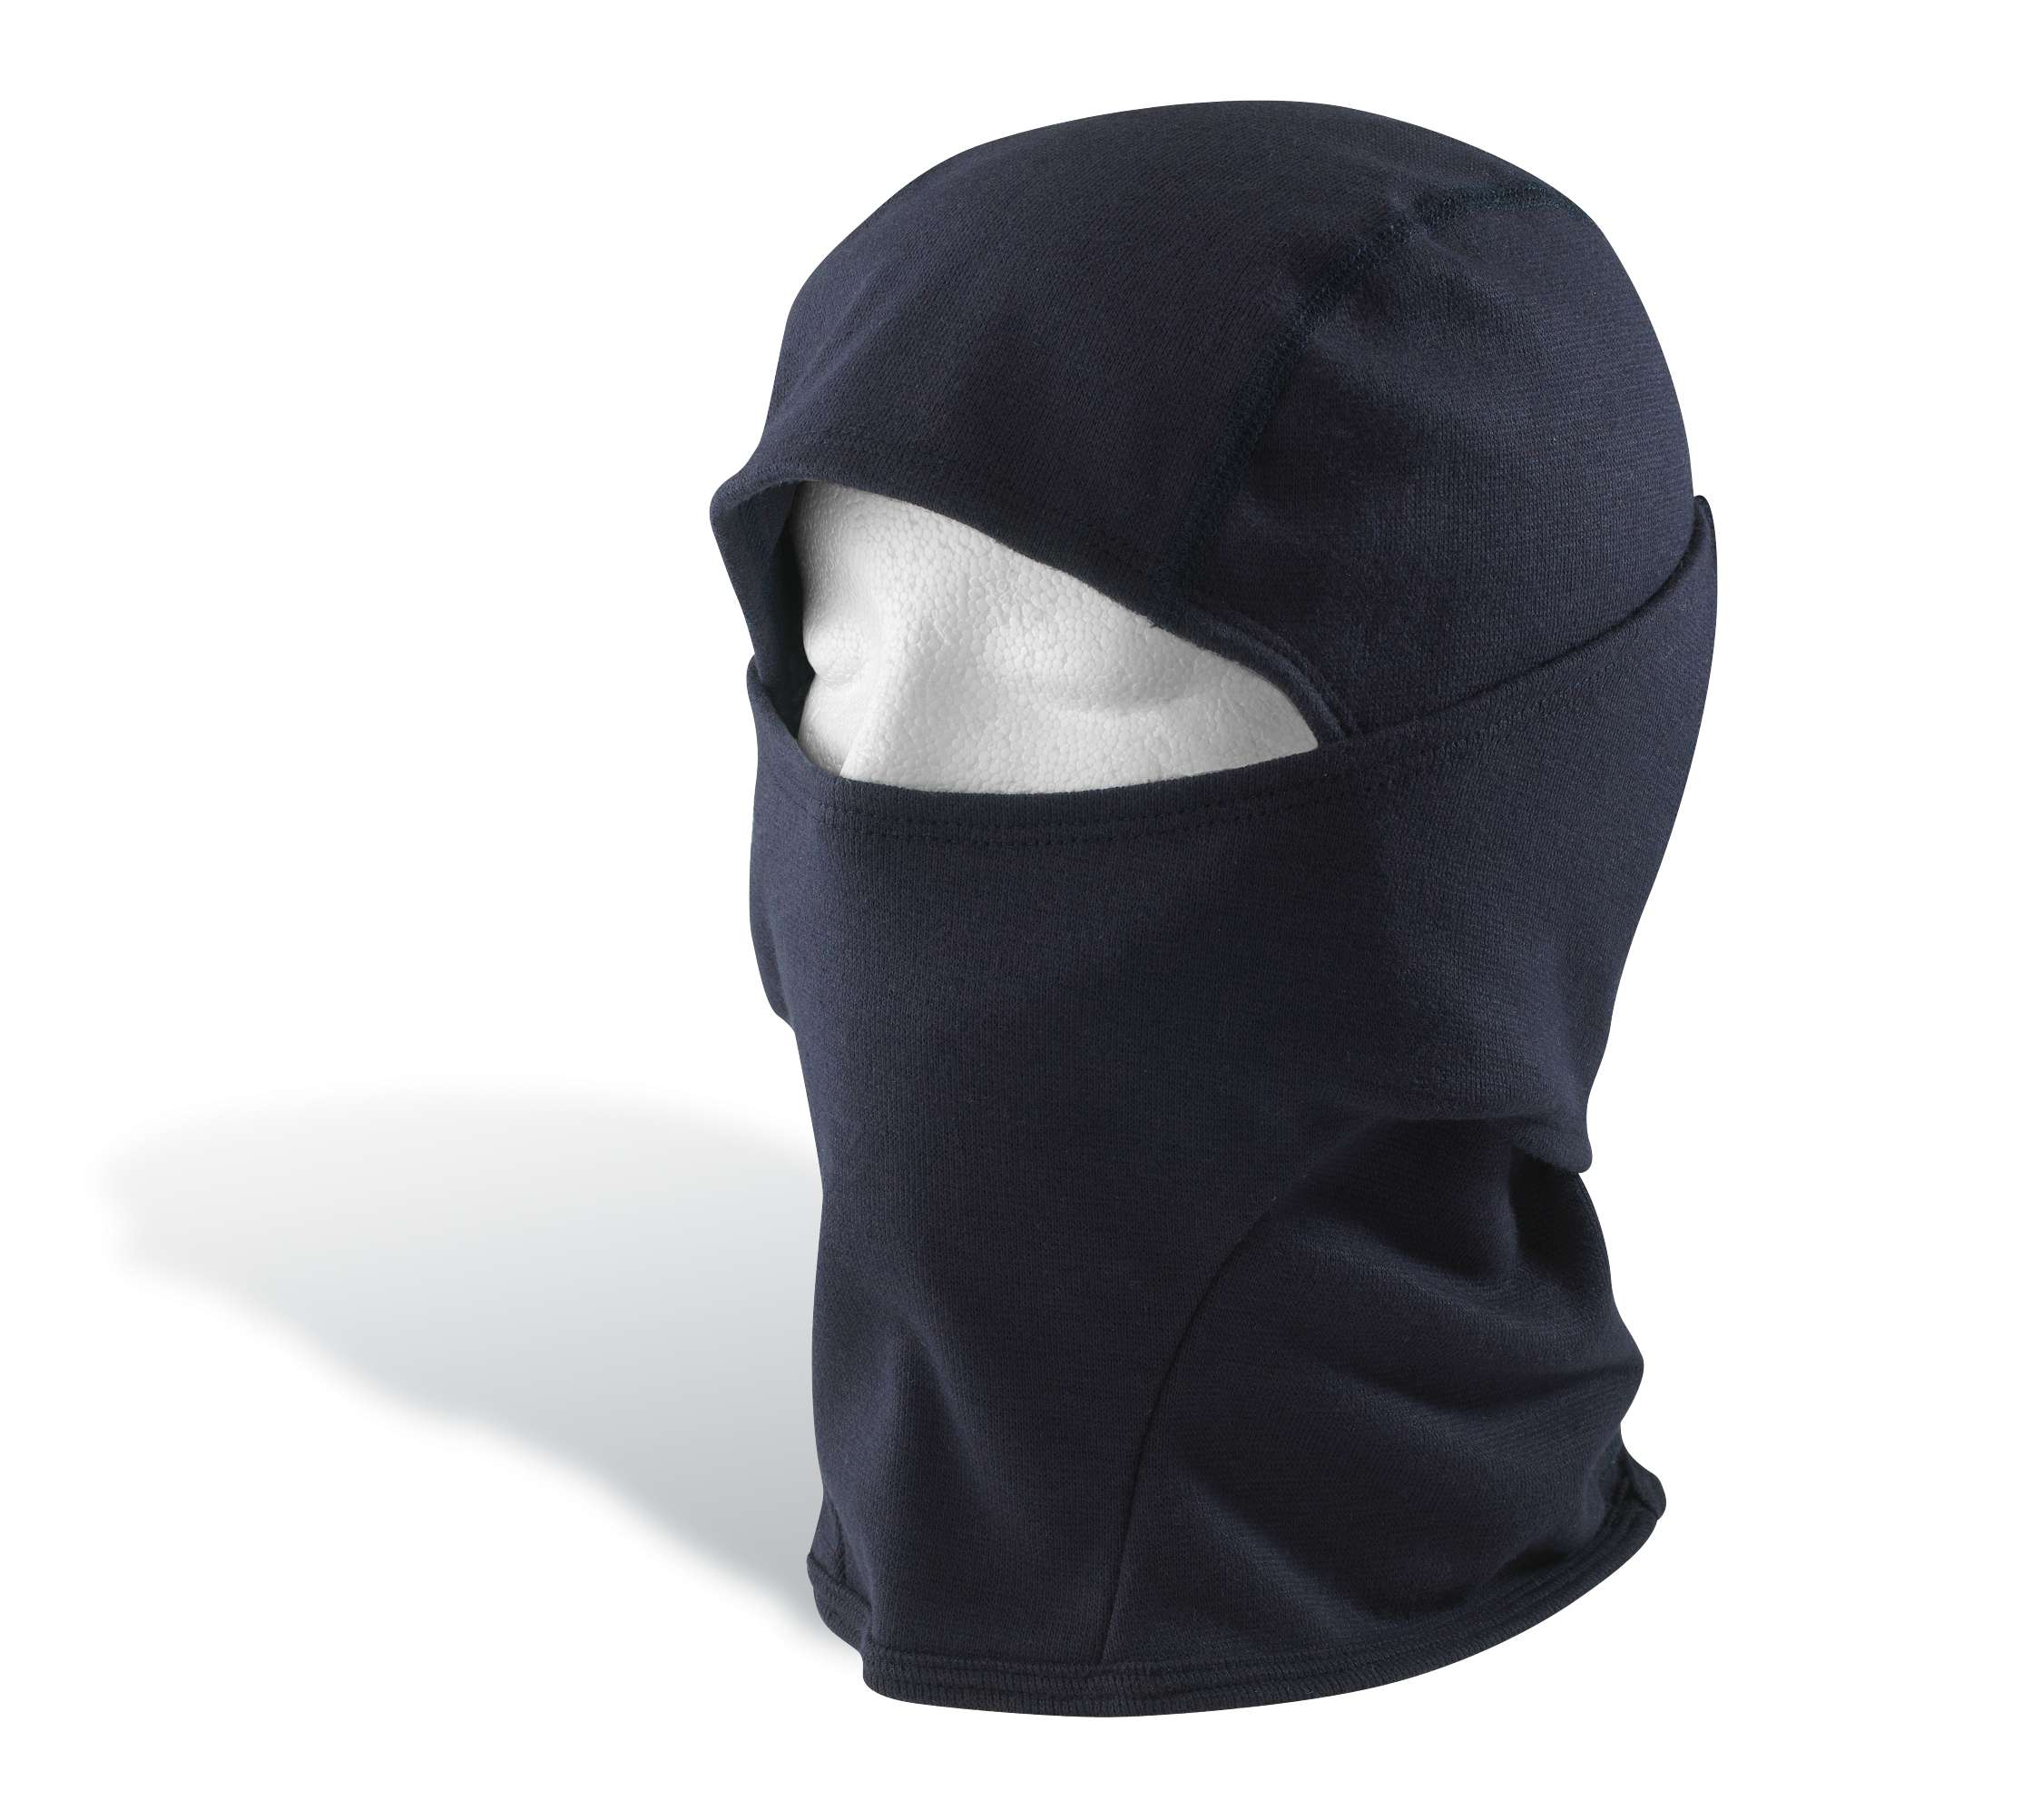 Carhartt Flame-Resistant Double-Layer Work-Dry Balaclava